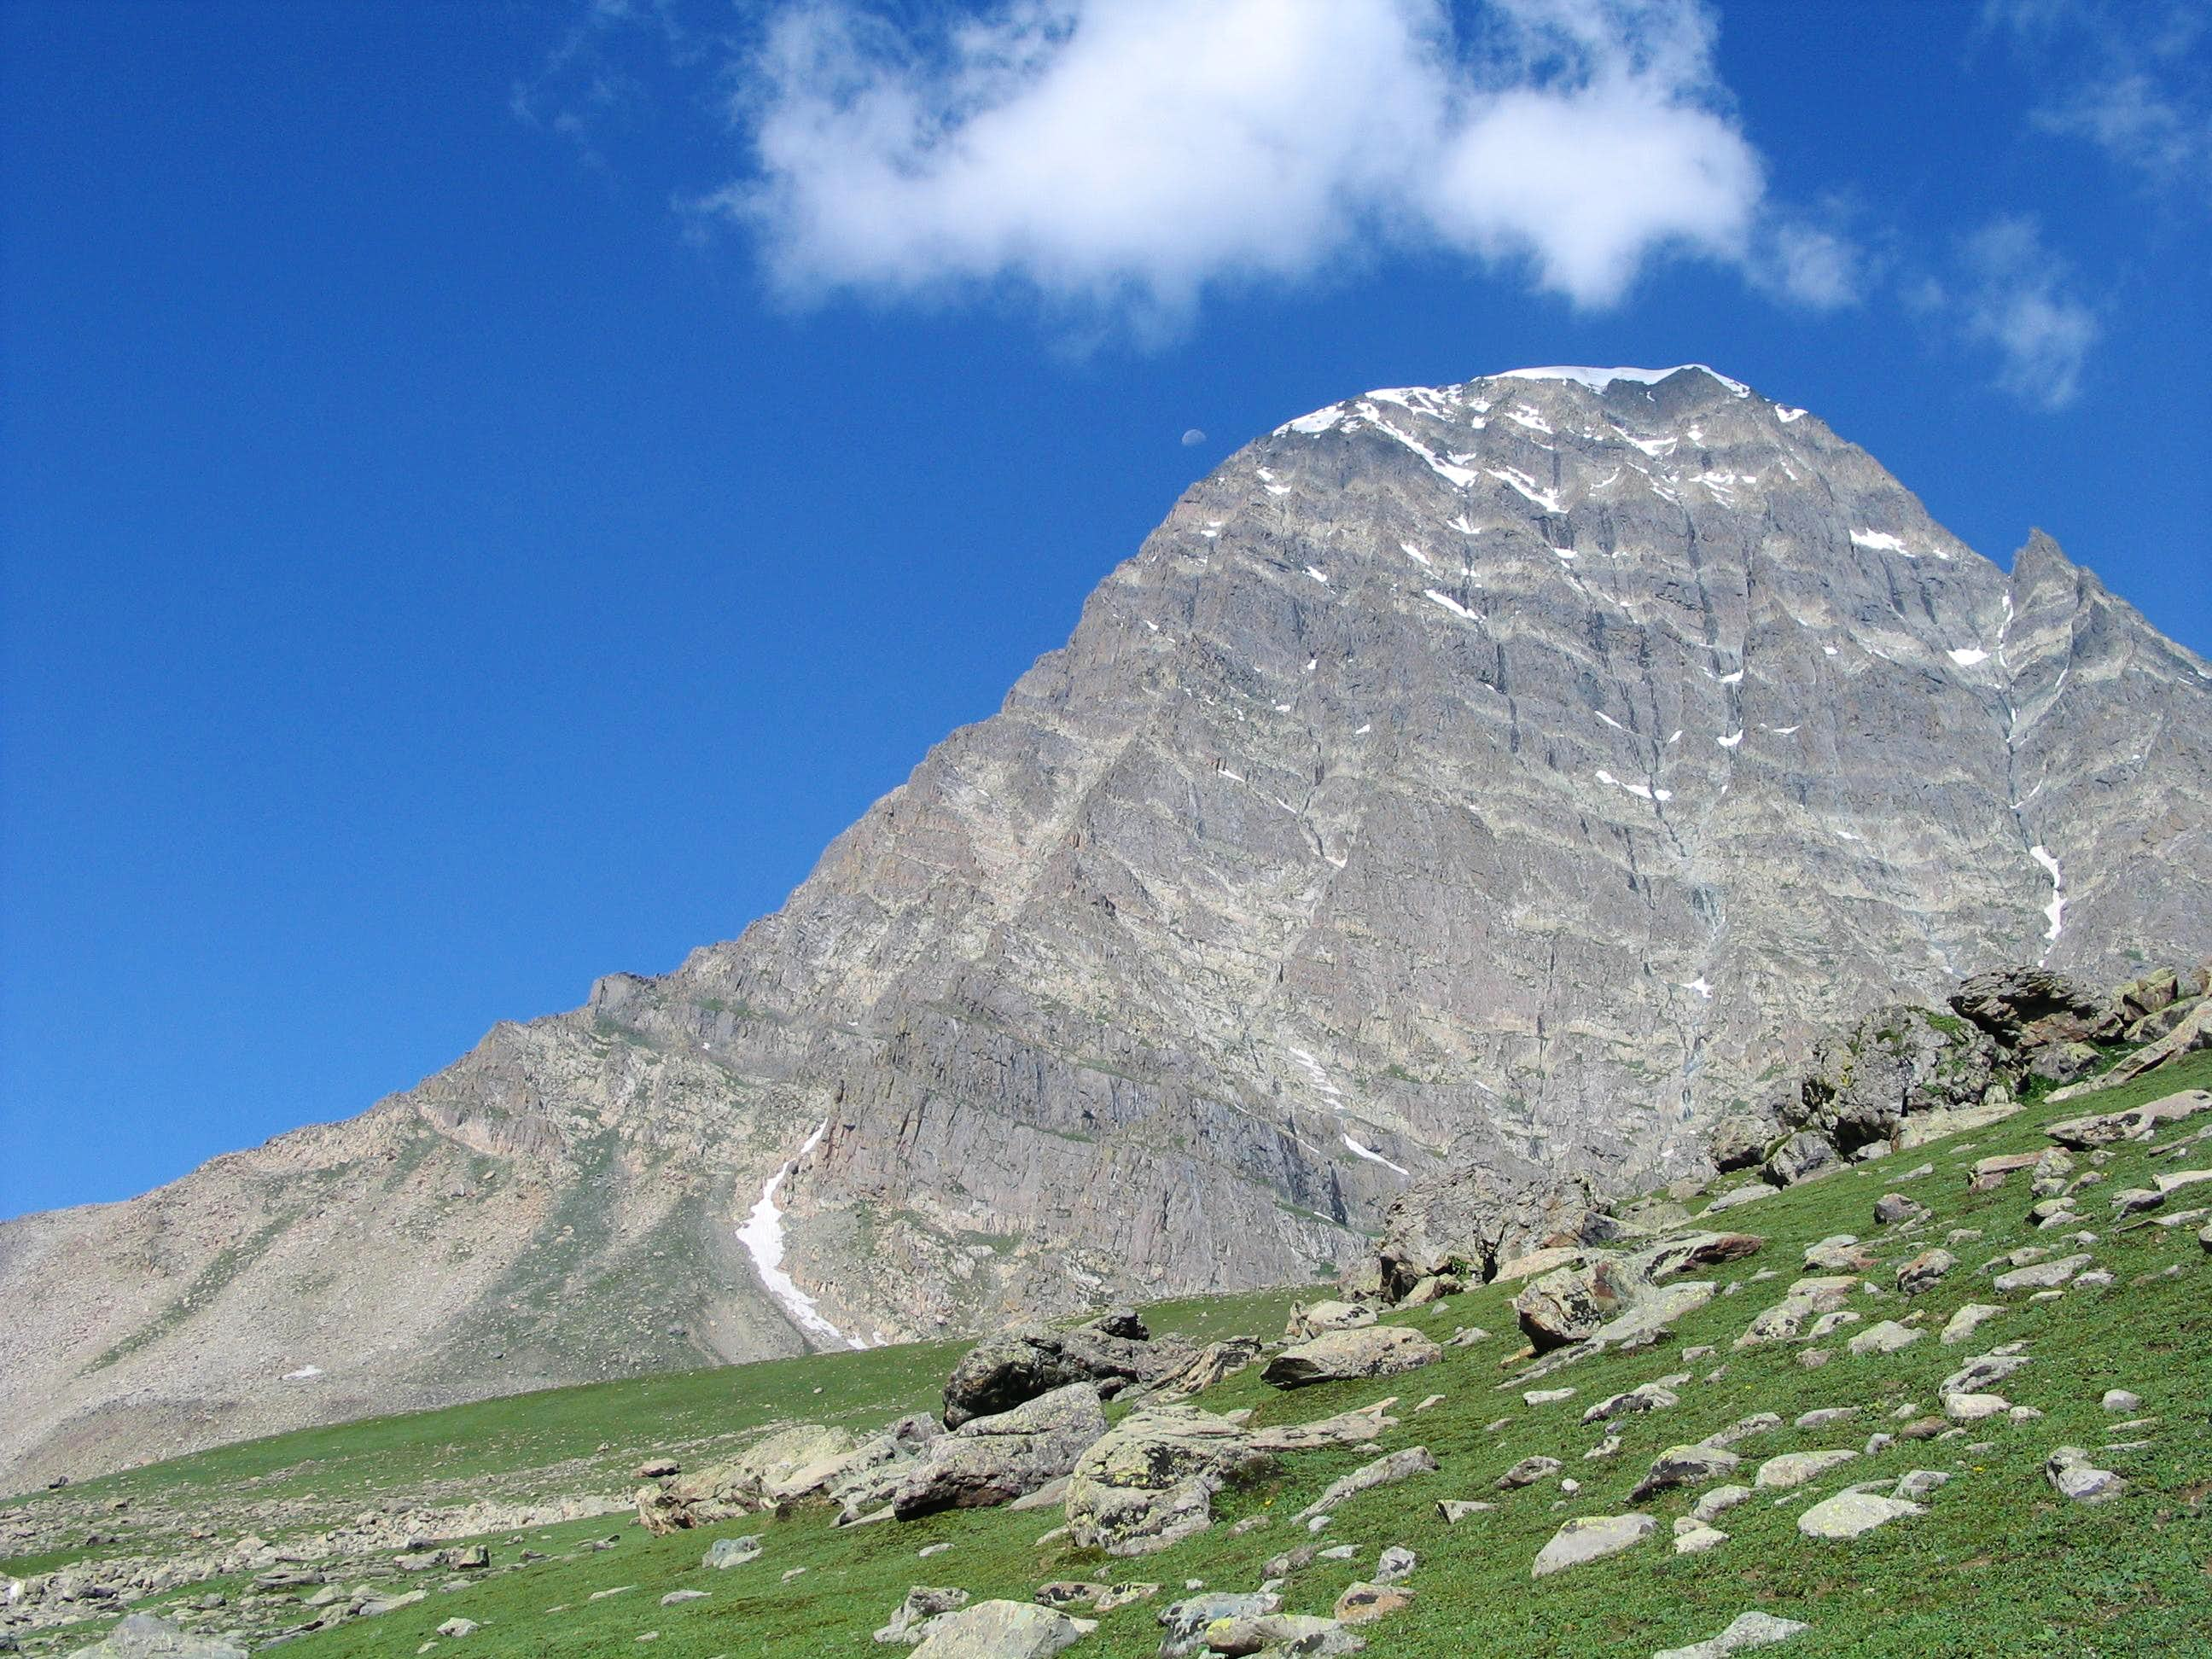 Harmukh (16,870 feet) near village Naranag, Jammu & Kashmir, India